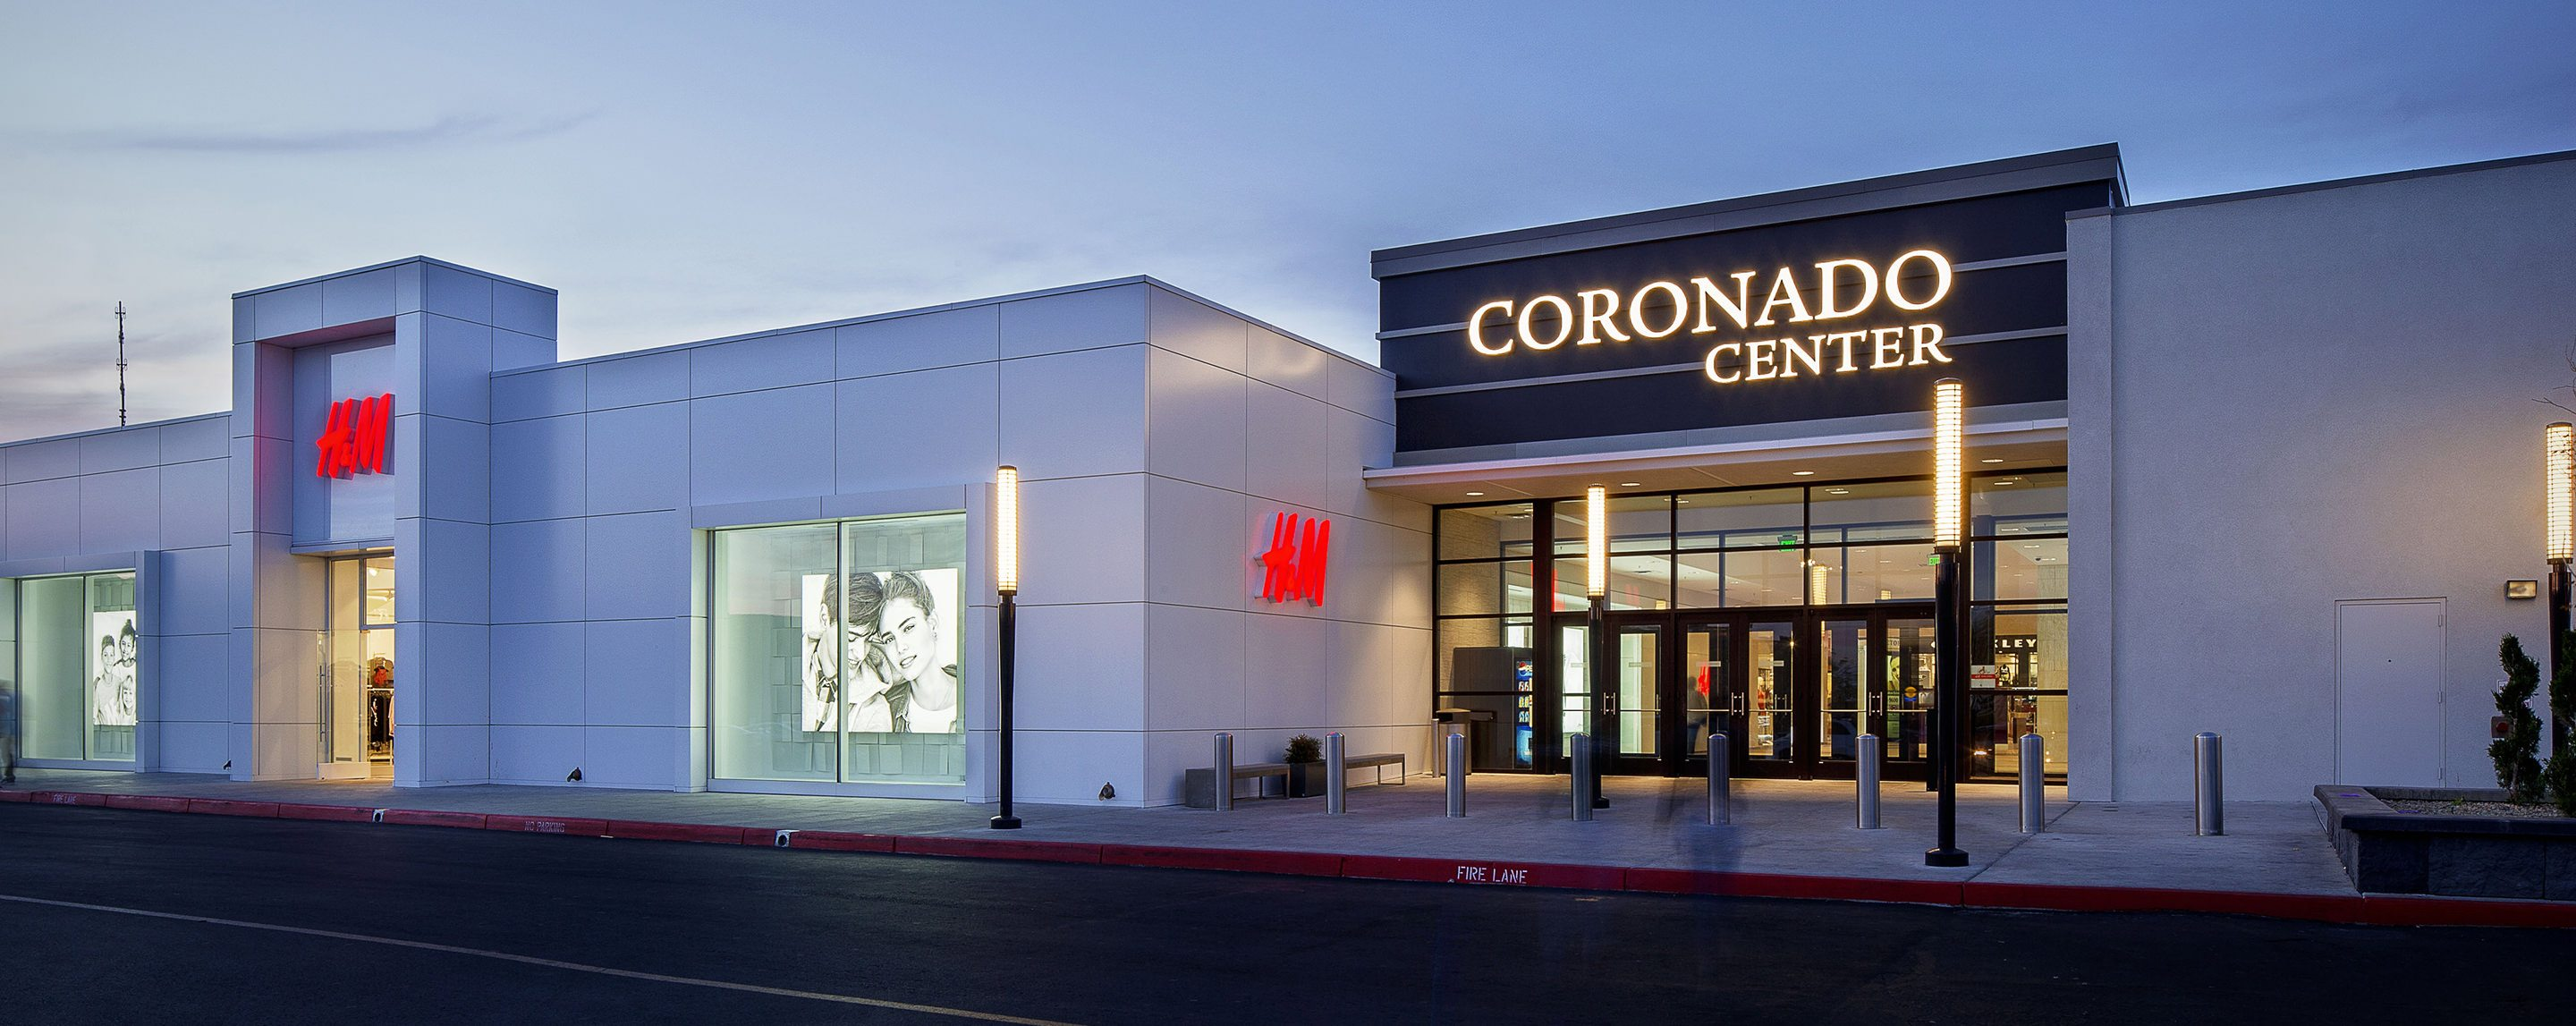 The outdoor entrance to Coronado Center is seen next to an H&M store in the early morning hours.